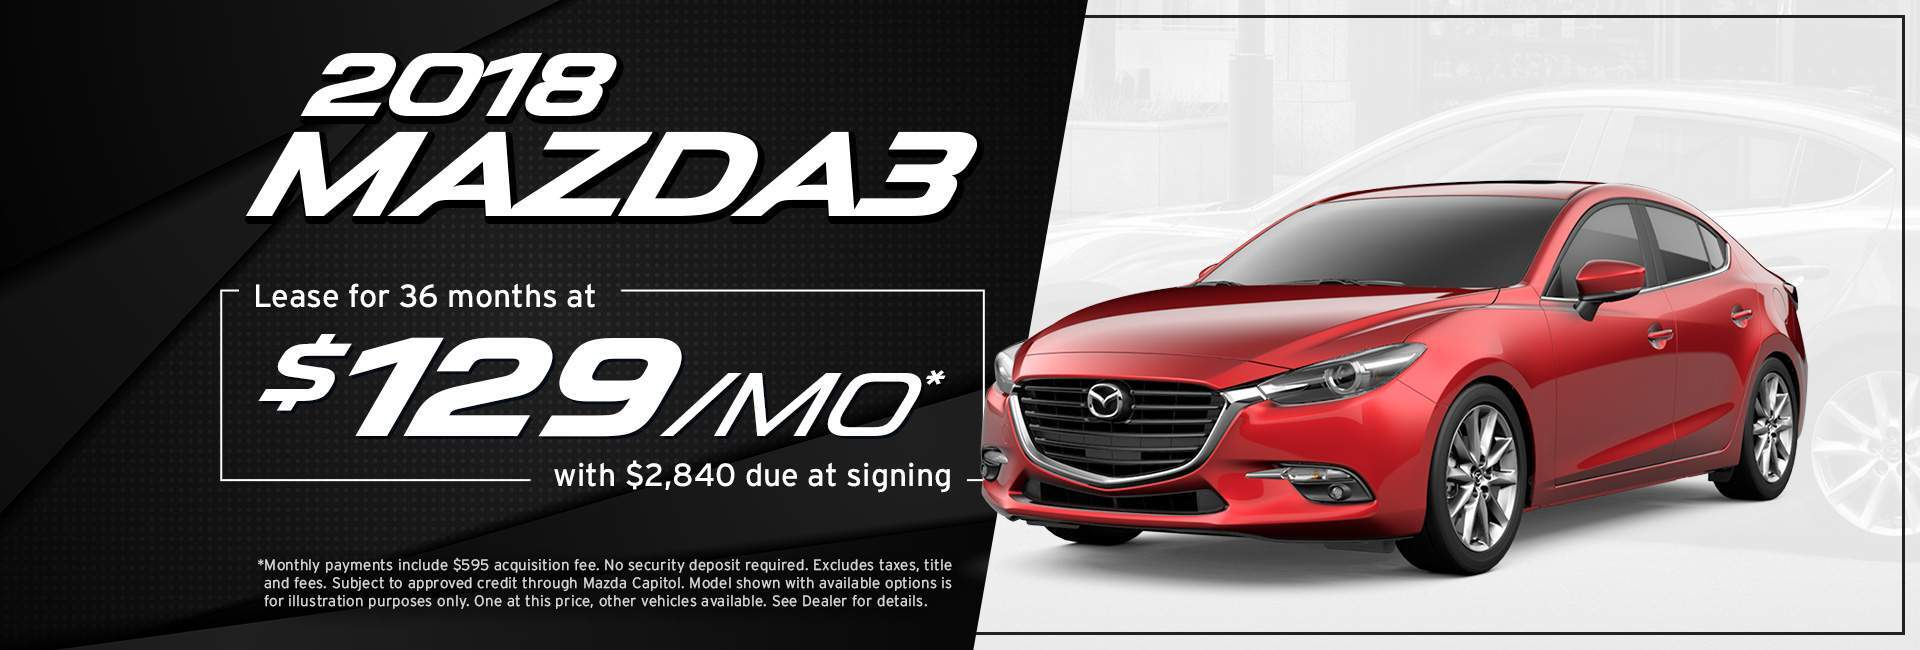 Philadelphia Mazda New Used Cars In Colmar North Autos Post